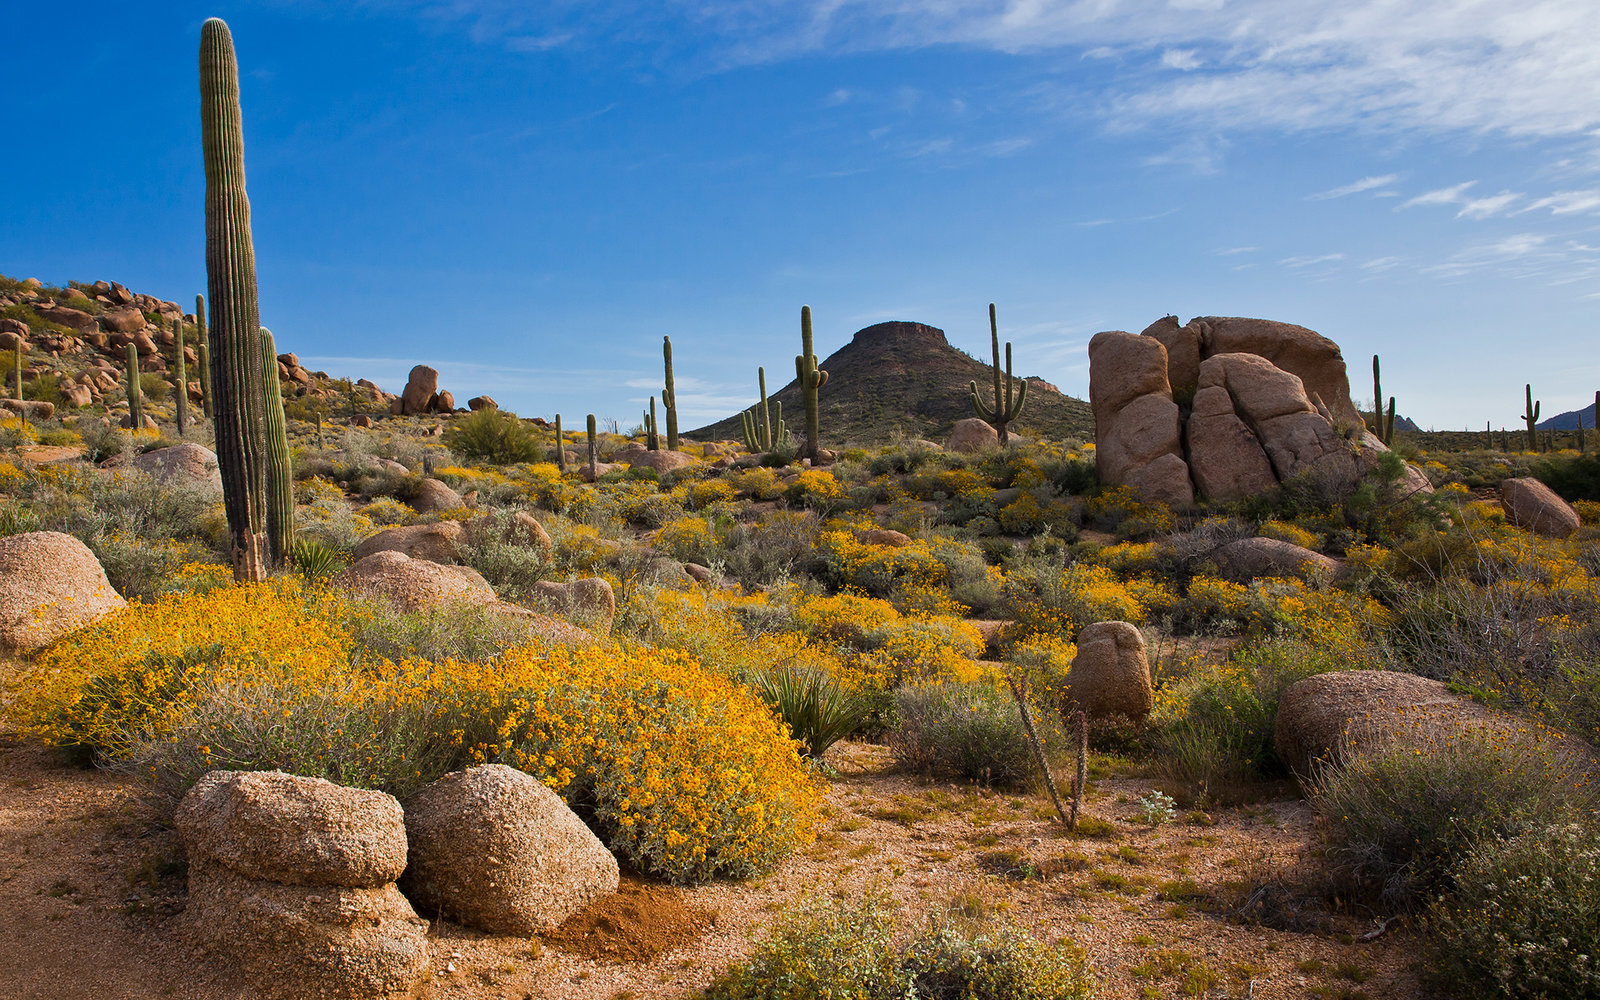 Flowers, saguaros and boulders in the desert